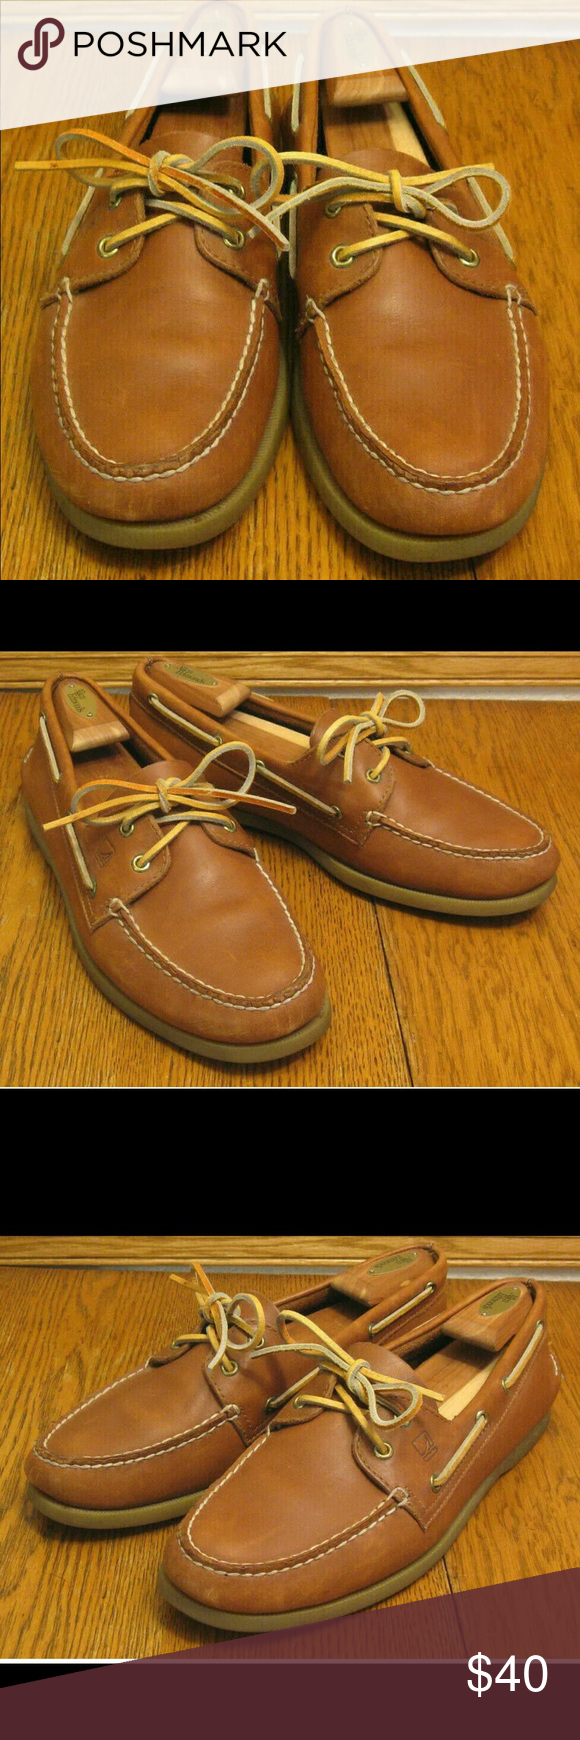 Mens SPERRY TOPSIDER brown leather DECK